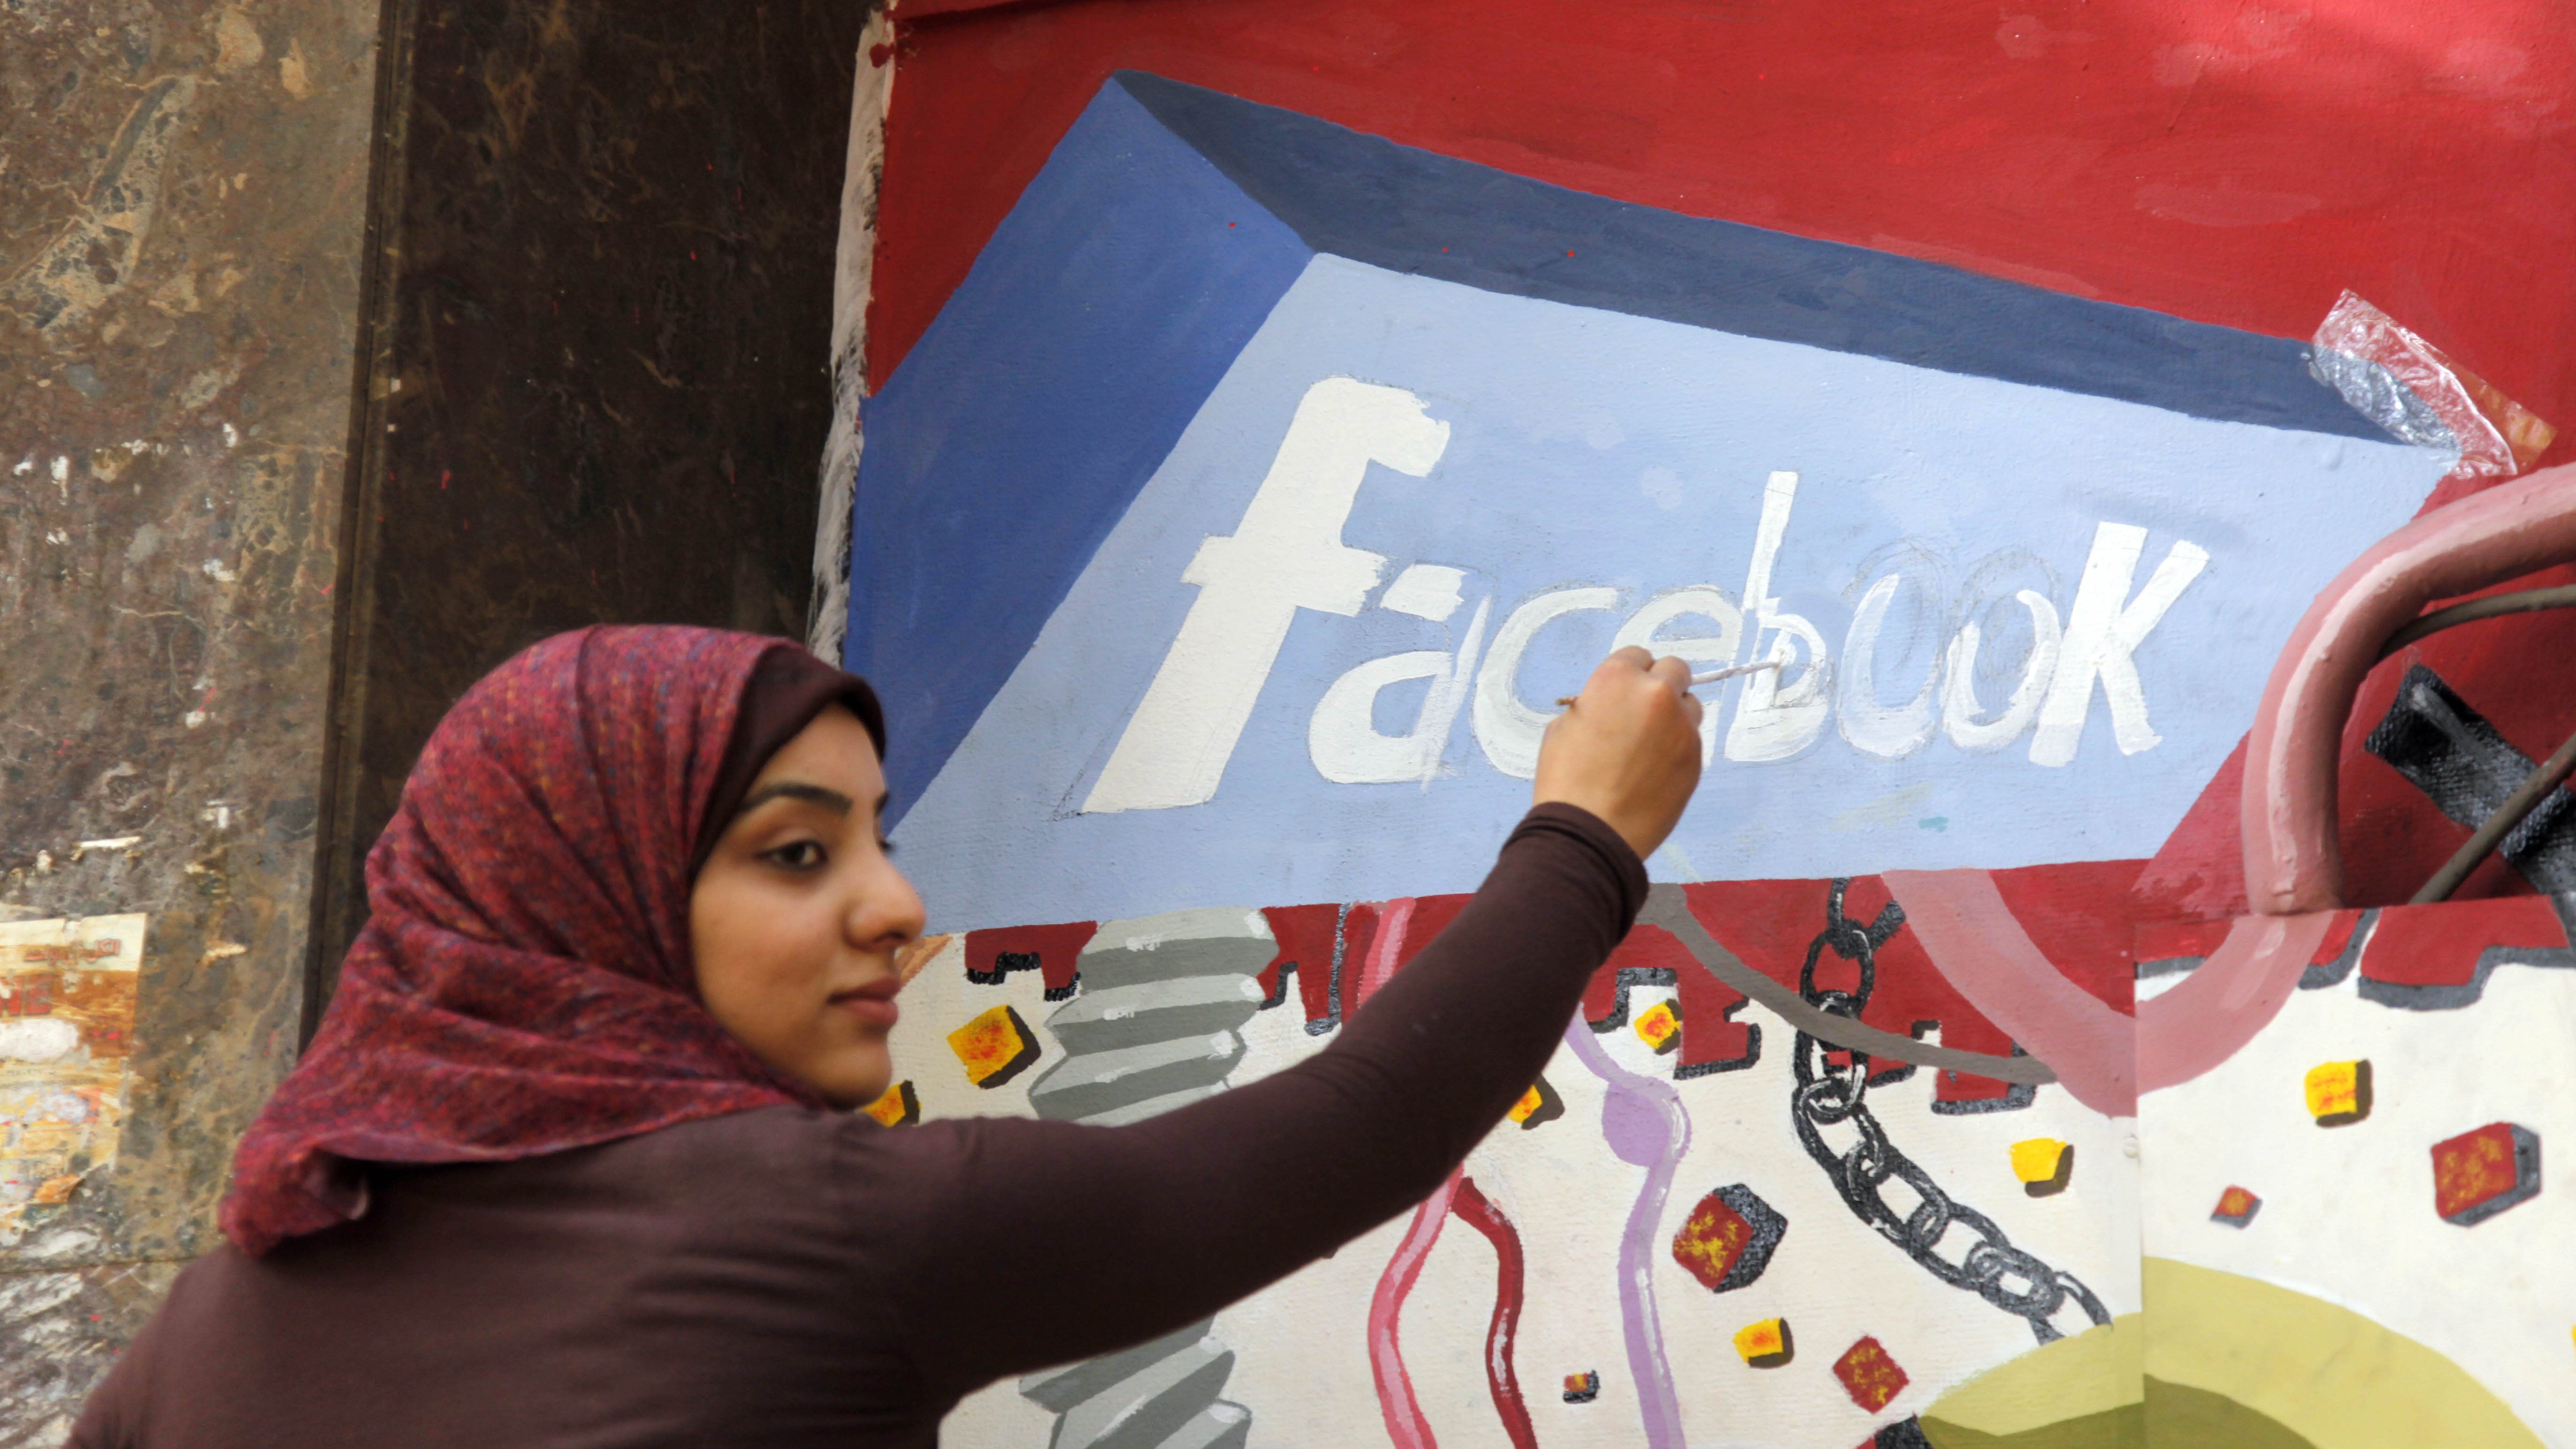 "FILE - In this March 30, 2011, file photo. an art student from the University of Helwan paints the Facebook logo on a mural commemorating the revolution that overthrew Hosni Mubarak in the Zamalek neighborhood of Cairo, Egypt. In a statement to The Associated Press on Wednesday, Dec 30, 2015, Facebook said it is ""disappointed"" that a program providing free basic Internet services to over three million Egyptians has been shut down. It said the service provided Internet access to more than a million people who were not previously connected."